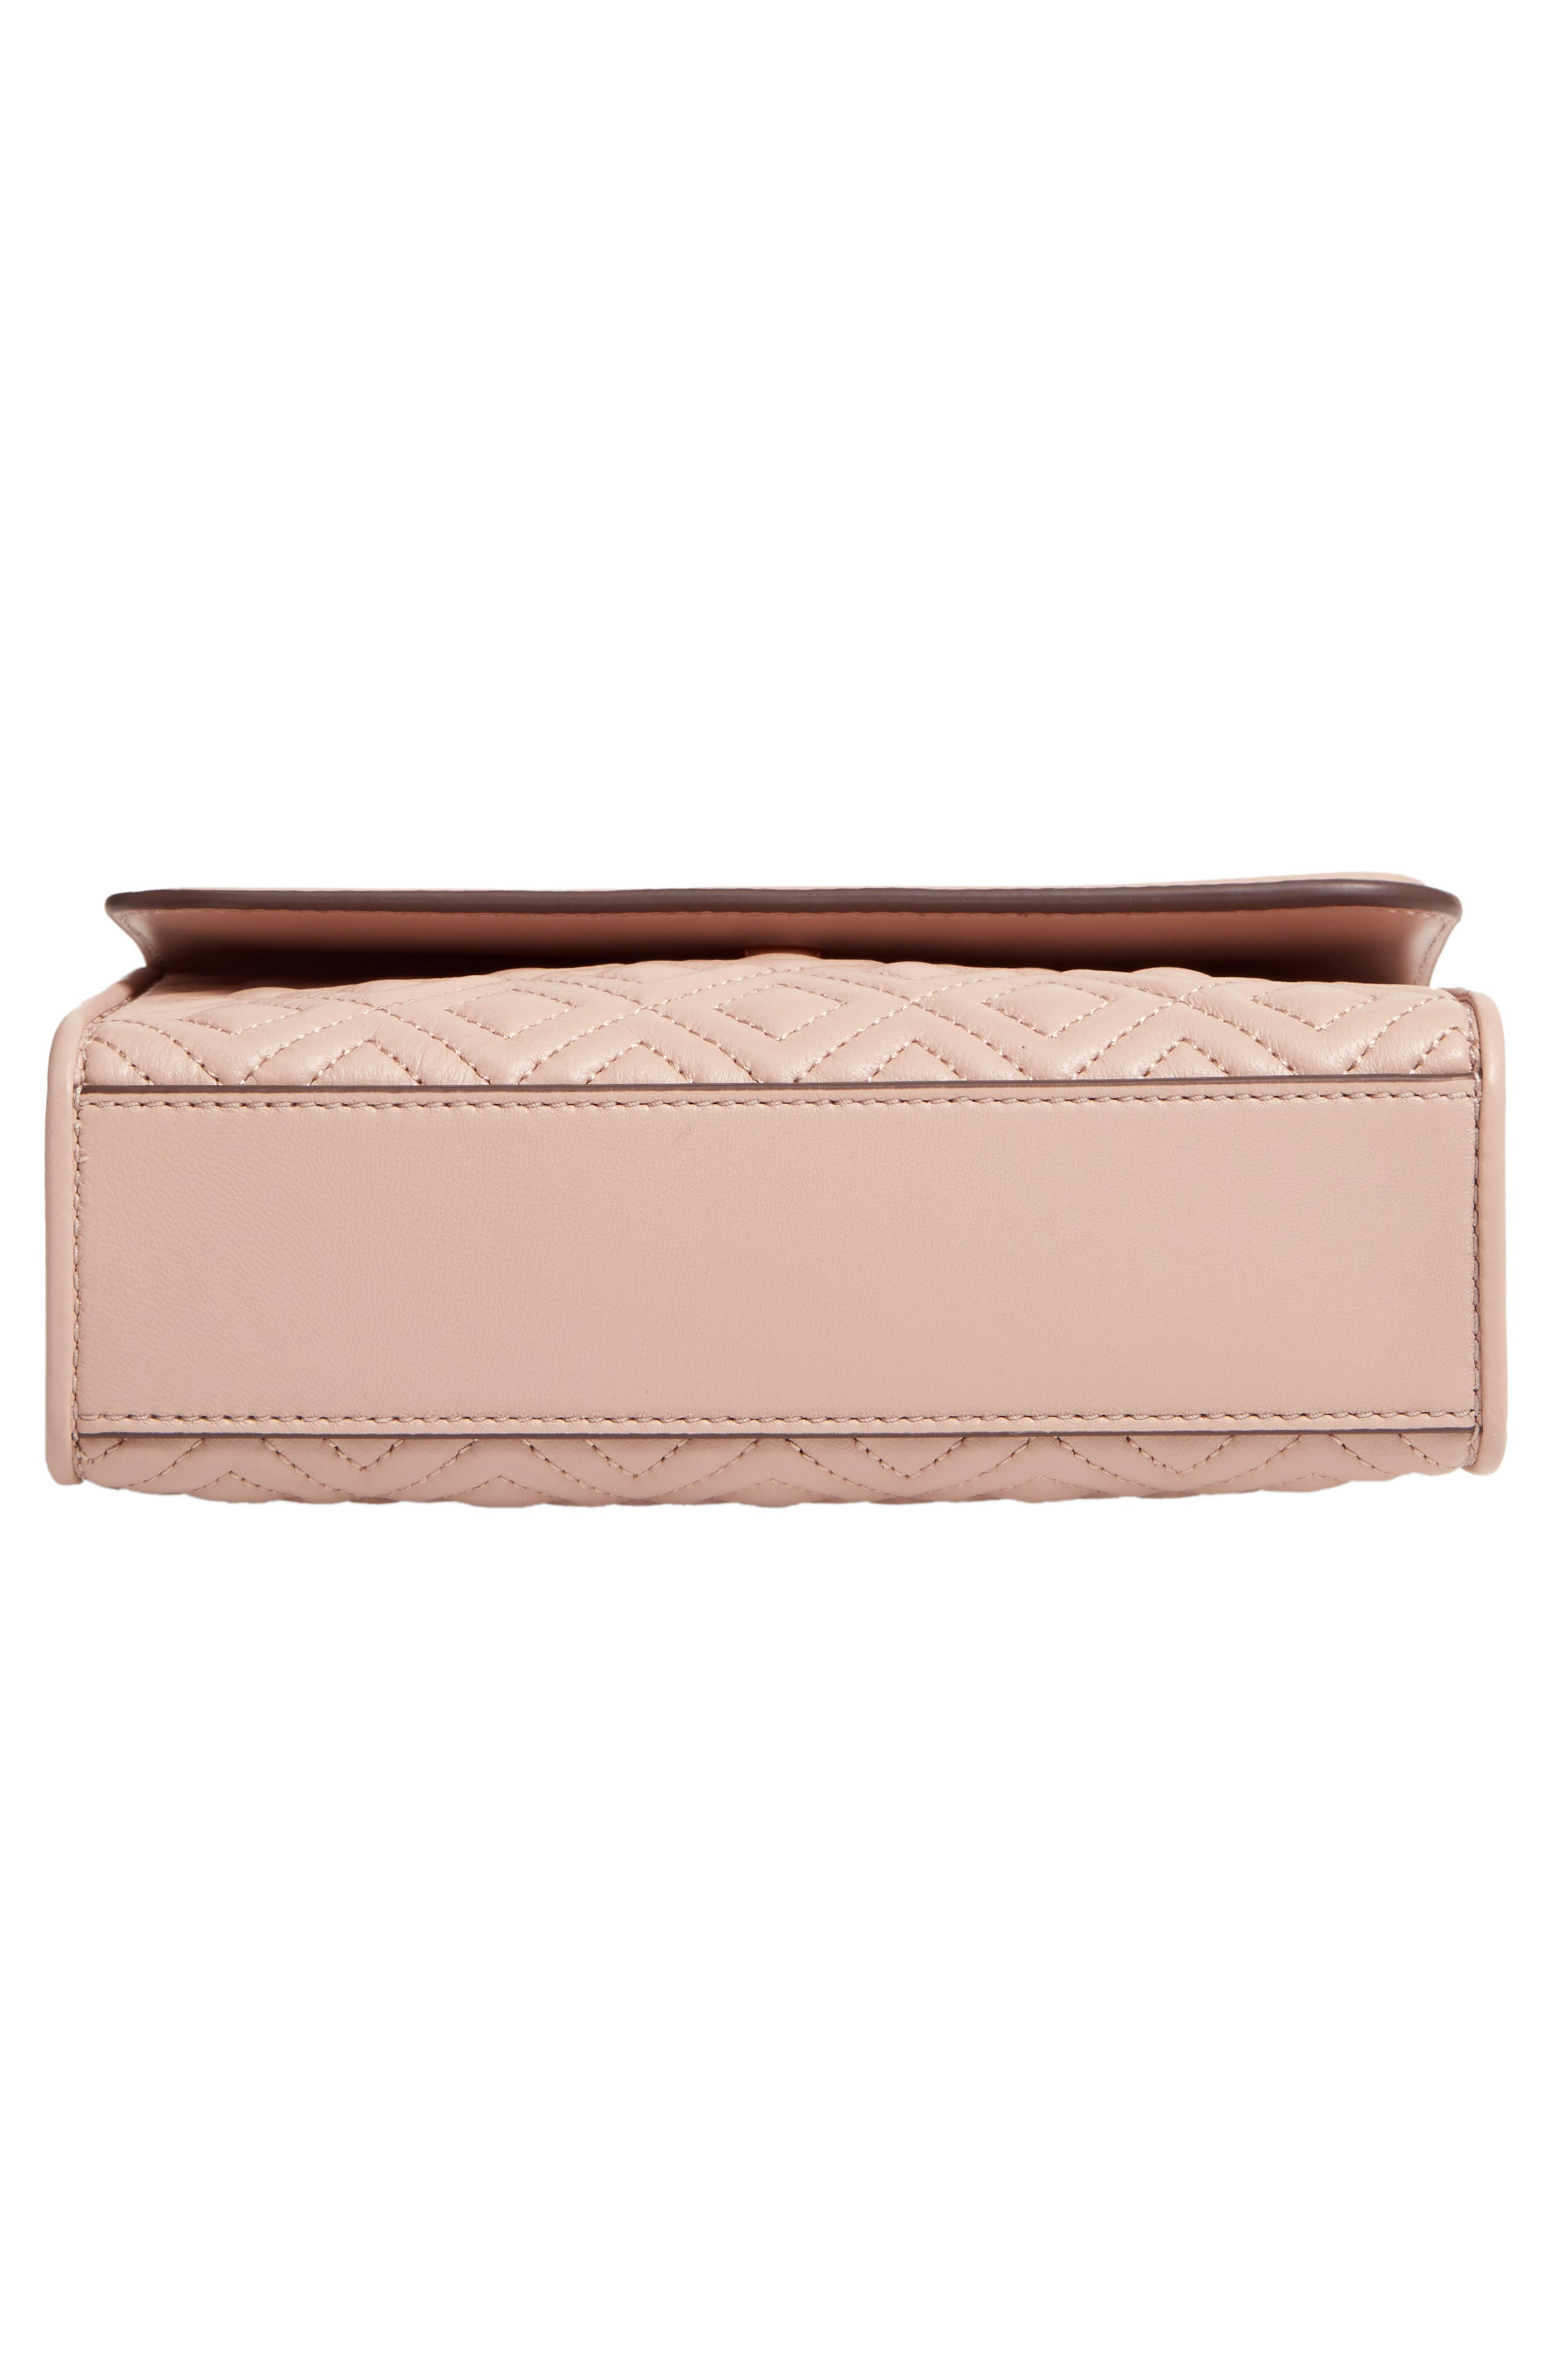 TORY BURCH, Small Fleming Leather Convertible Shoulder Bag, Alternate thumbnail 7, color, LIGHT TAUPE